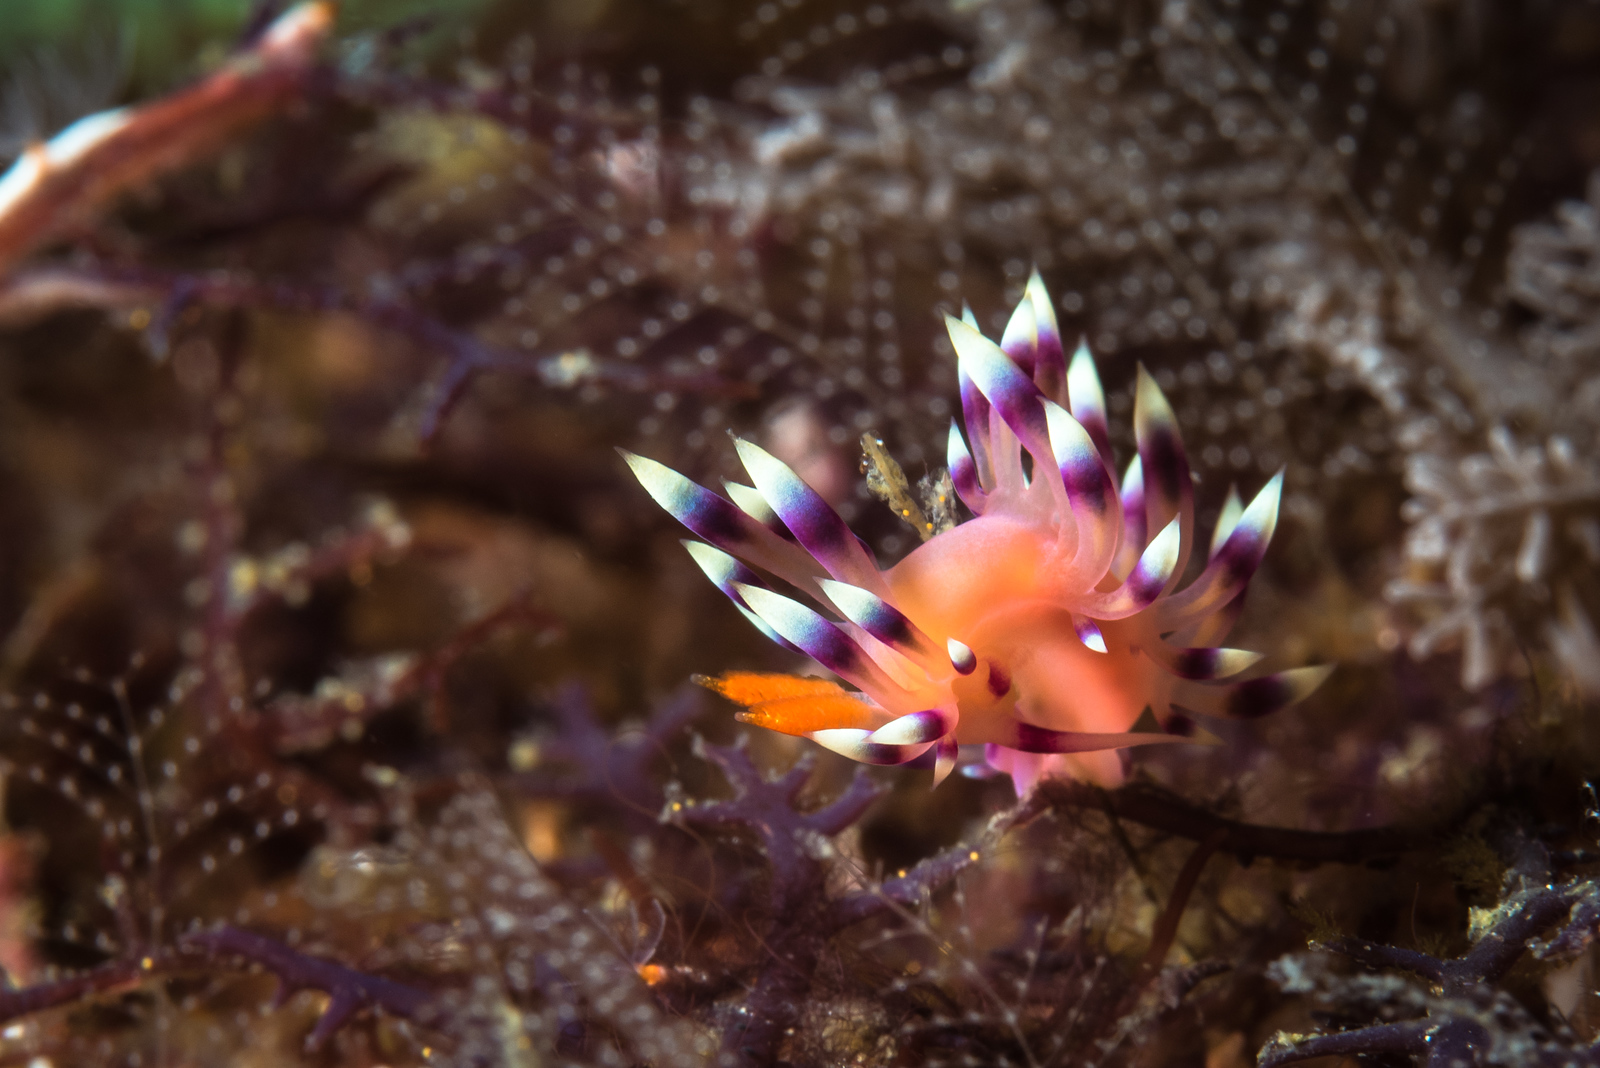 Desireable Nudibranch